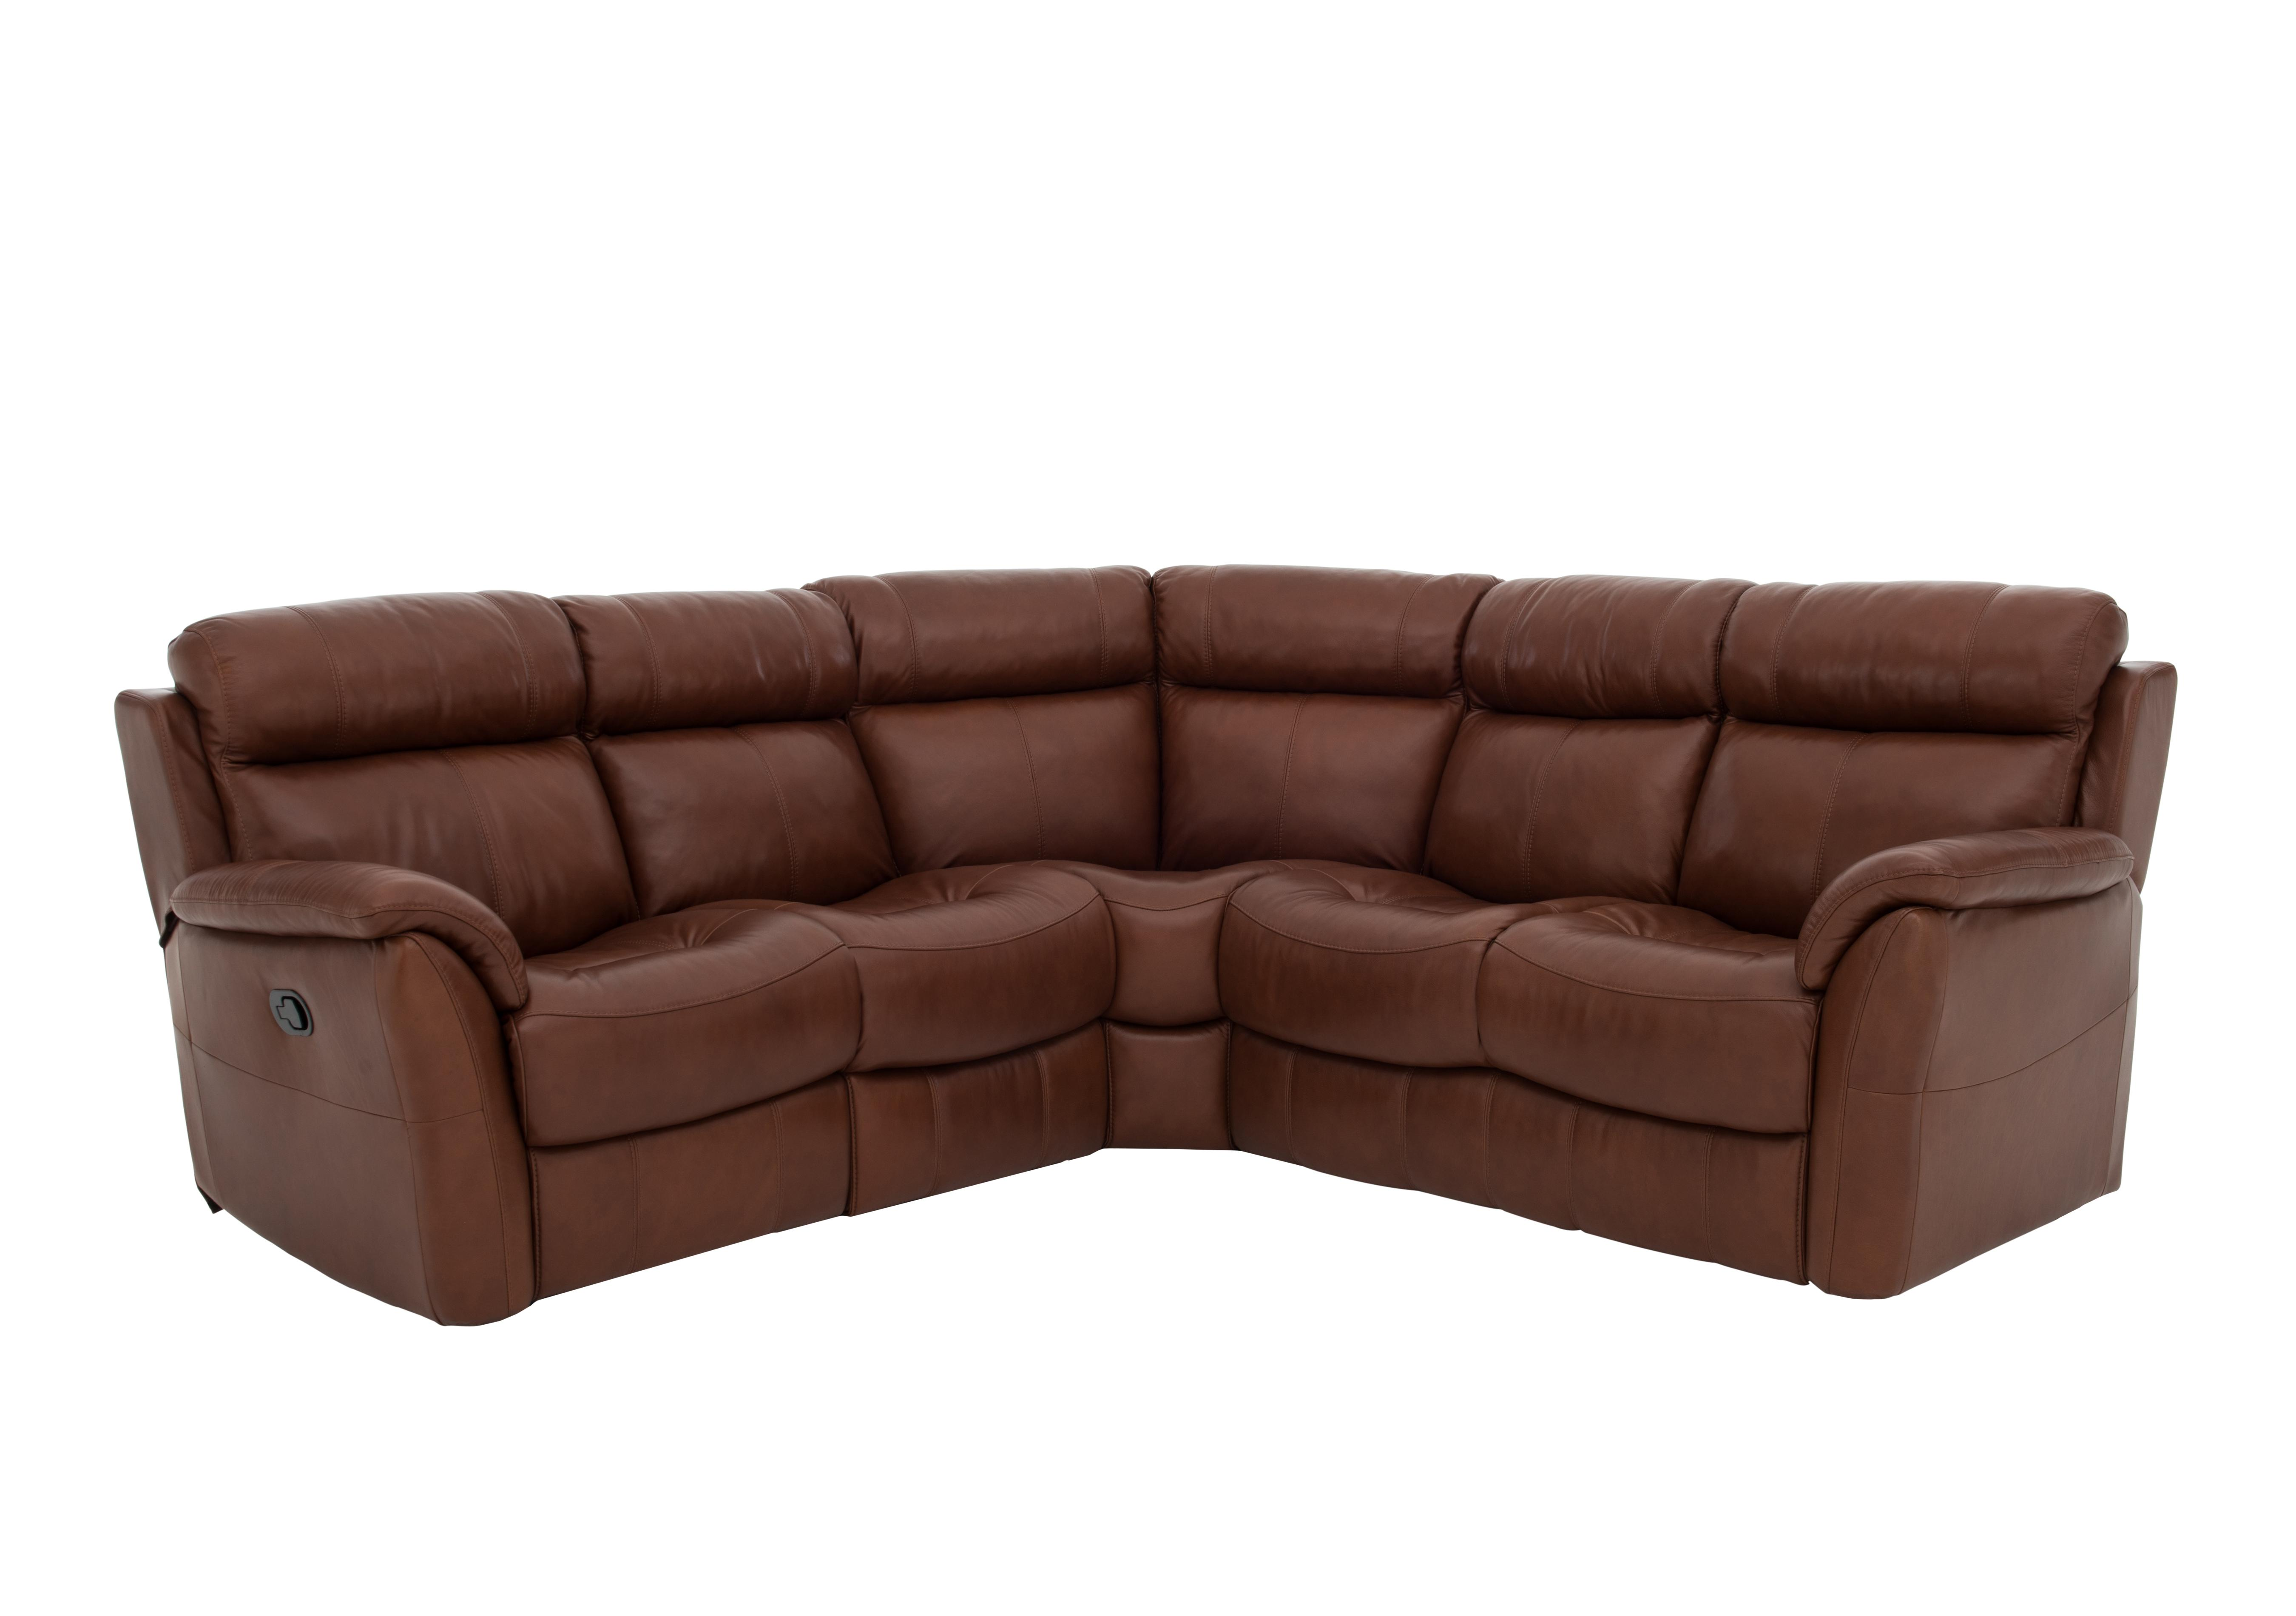 furniture village leather corner sofa bed chesterfield made in usa relax station revive world of